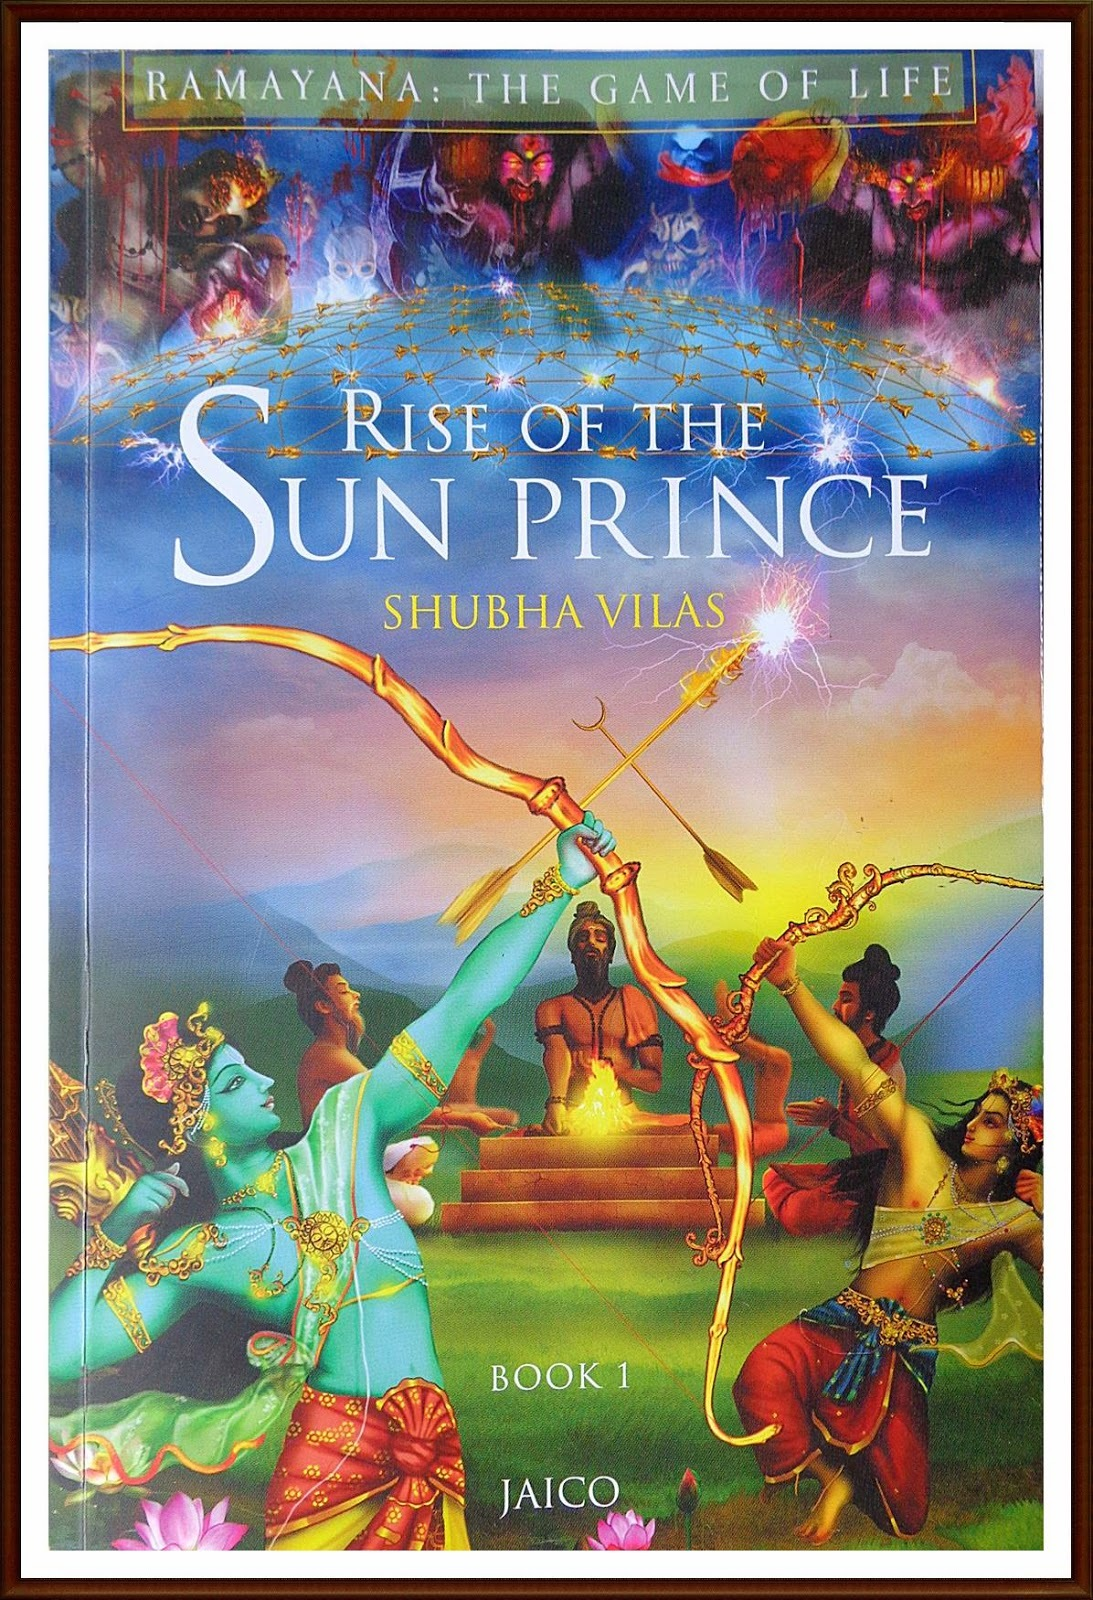 Ramayana - The Game of Life : Rise of the Sun Prince (Book 1) - Review